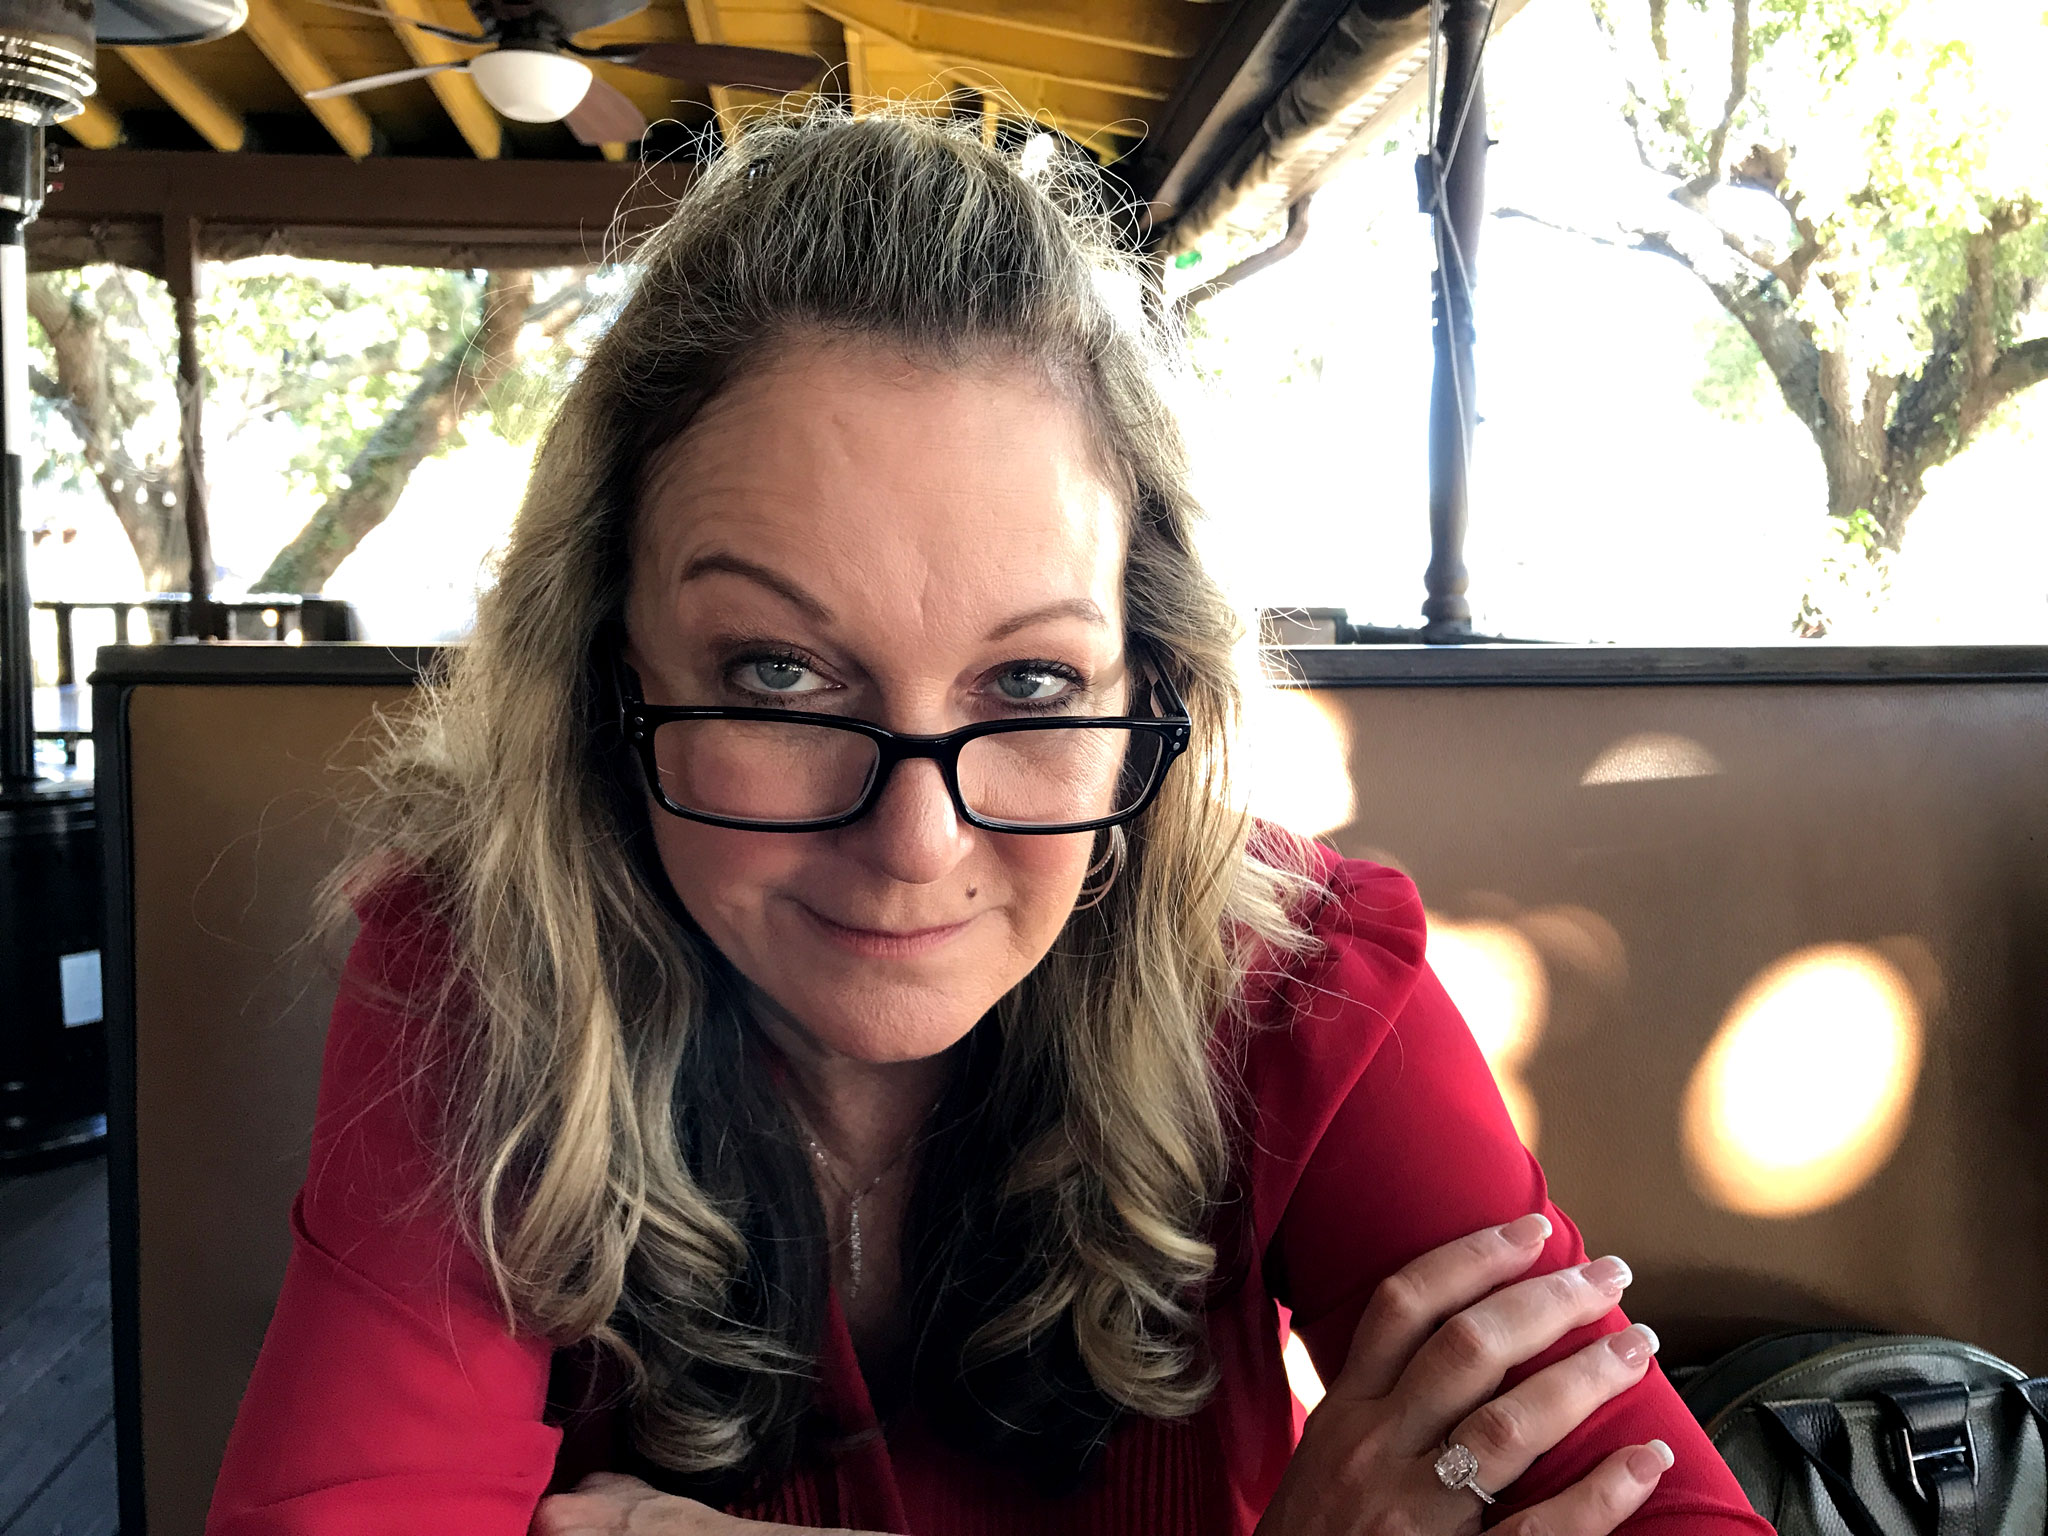 Lori Brown, Co-Host of the St. Petersburg Foodies Podcast